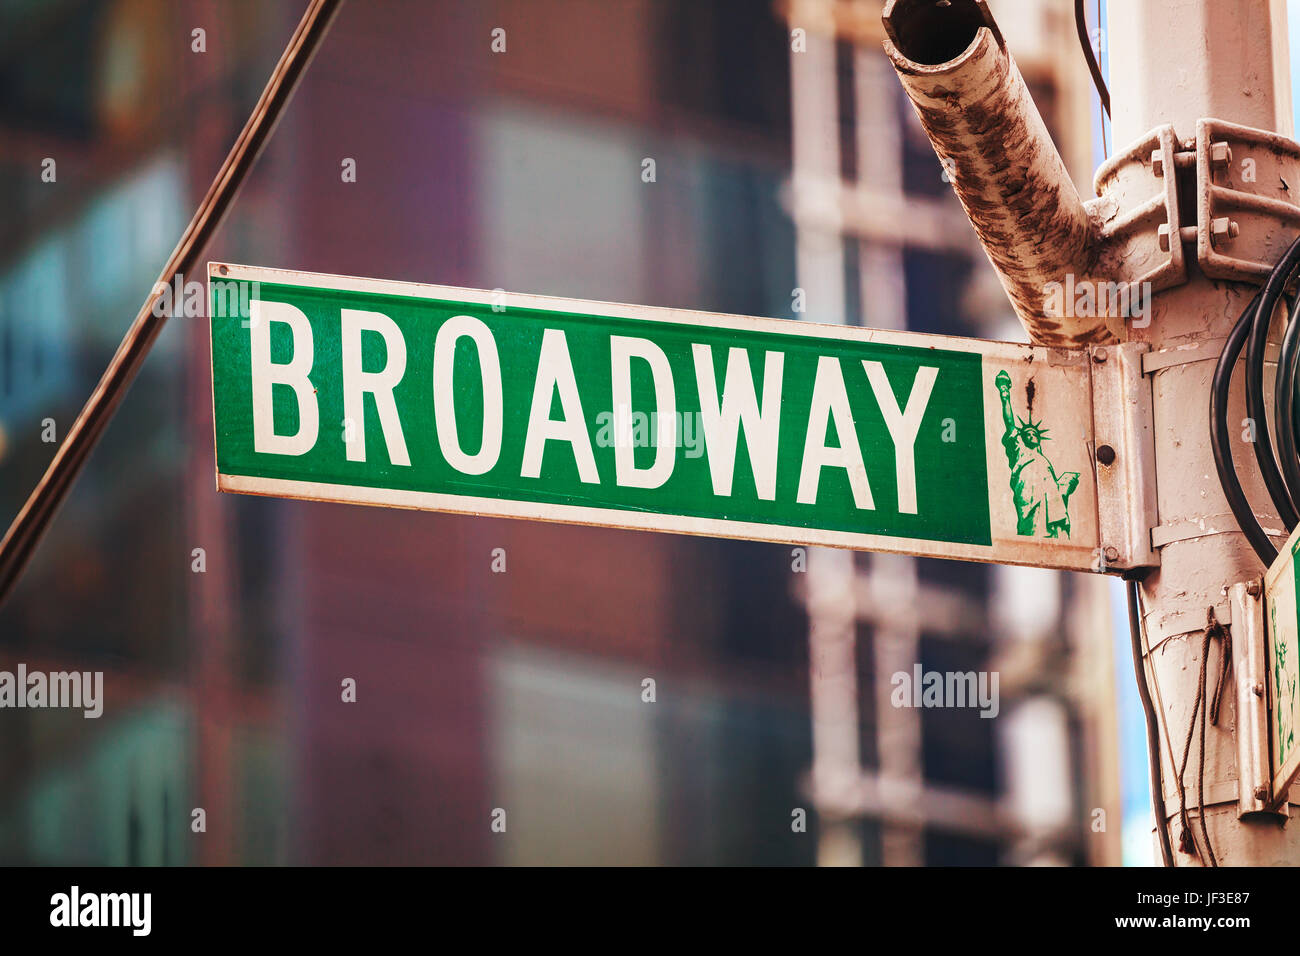 Broadway sign in New York City, USA - Stock Image